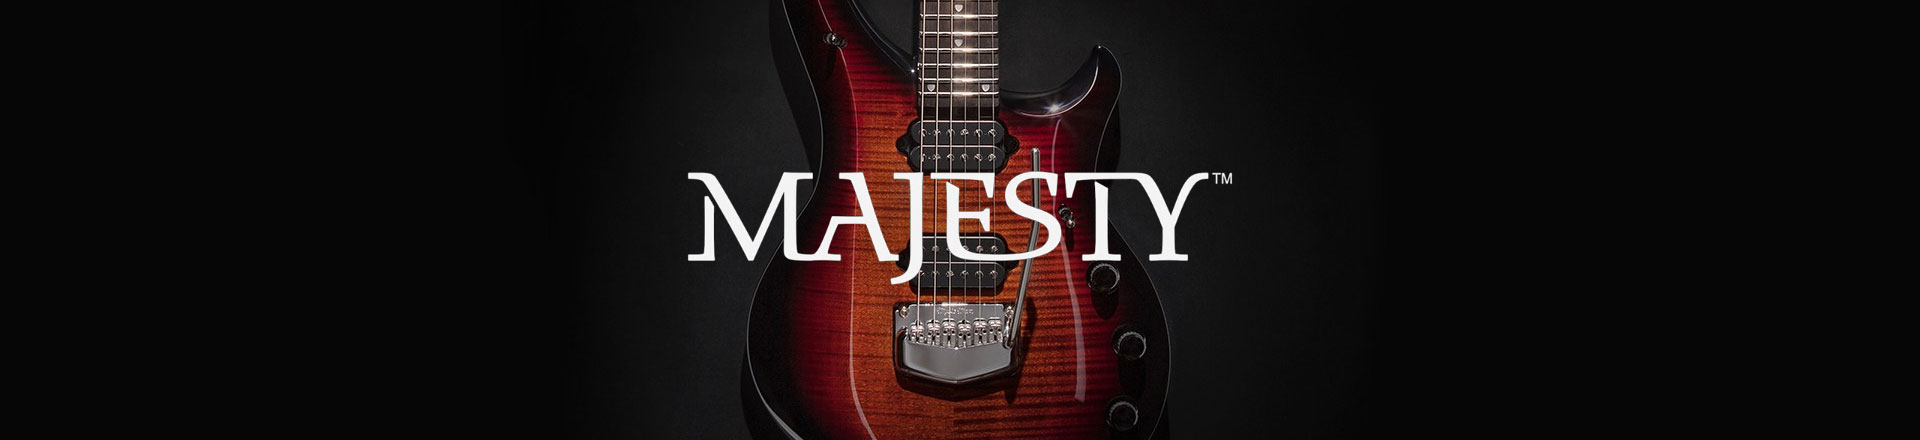 NAMM'19: Nowy model Majesty na rok 2019